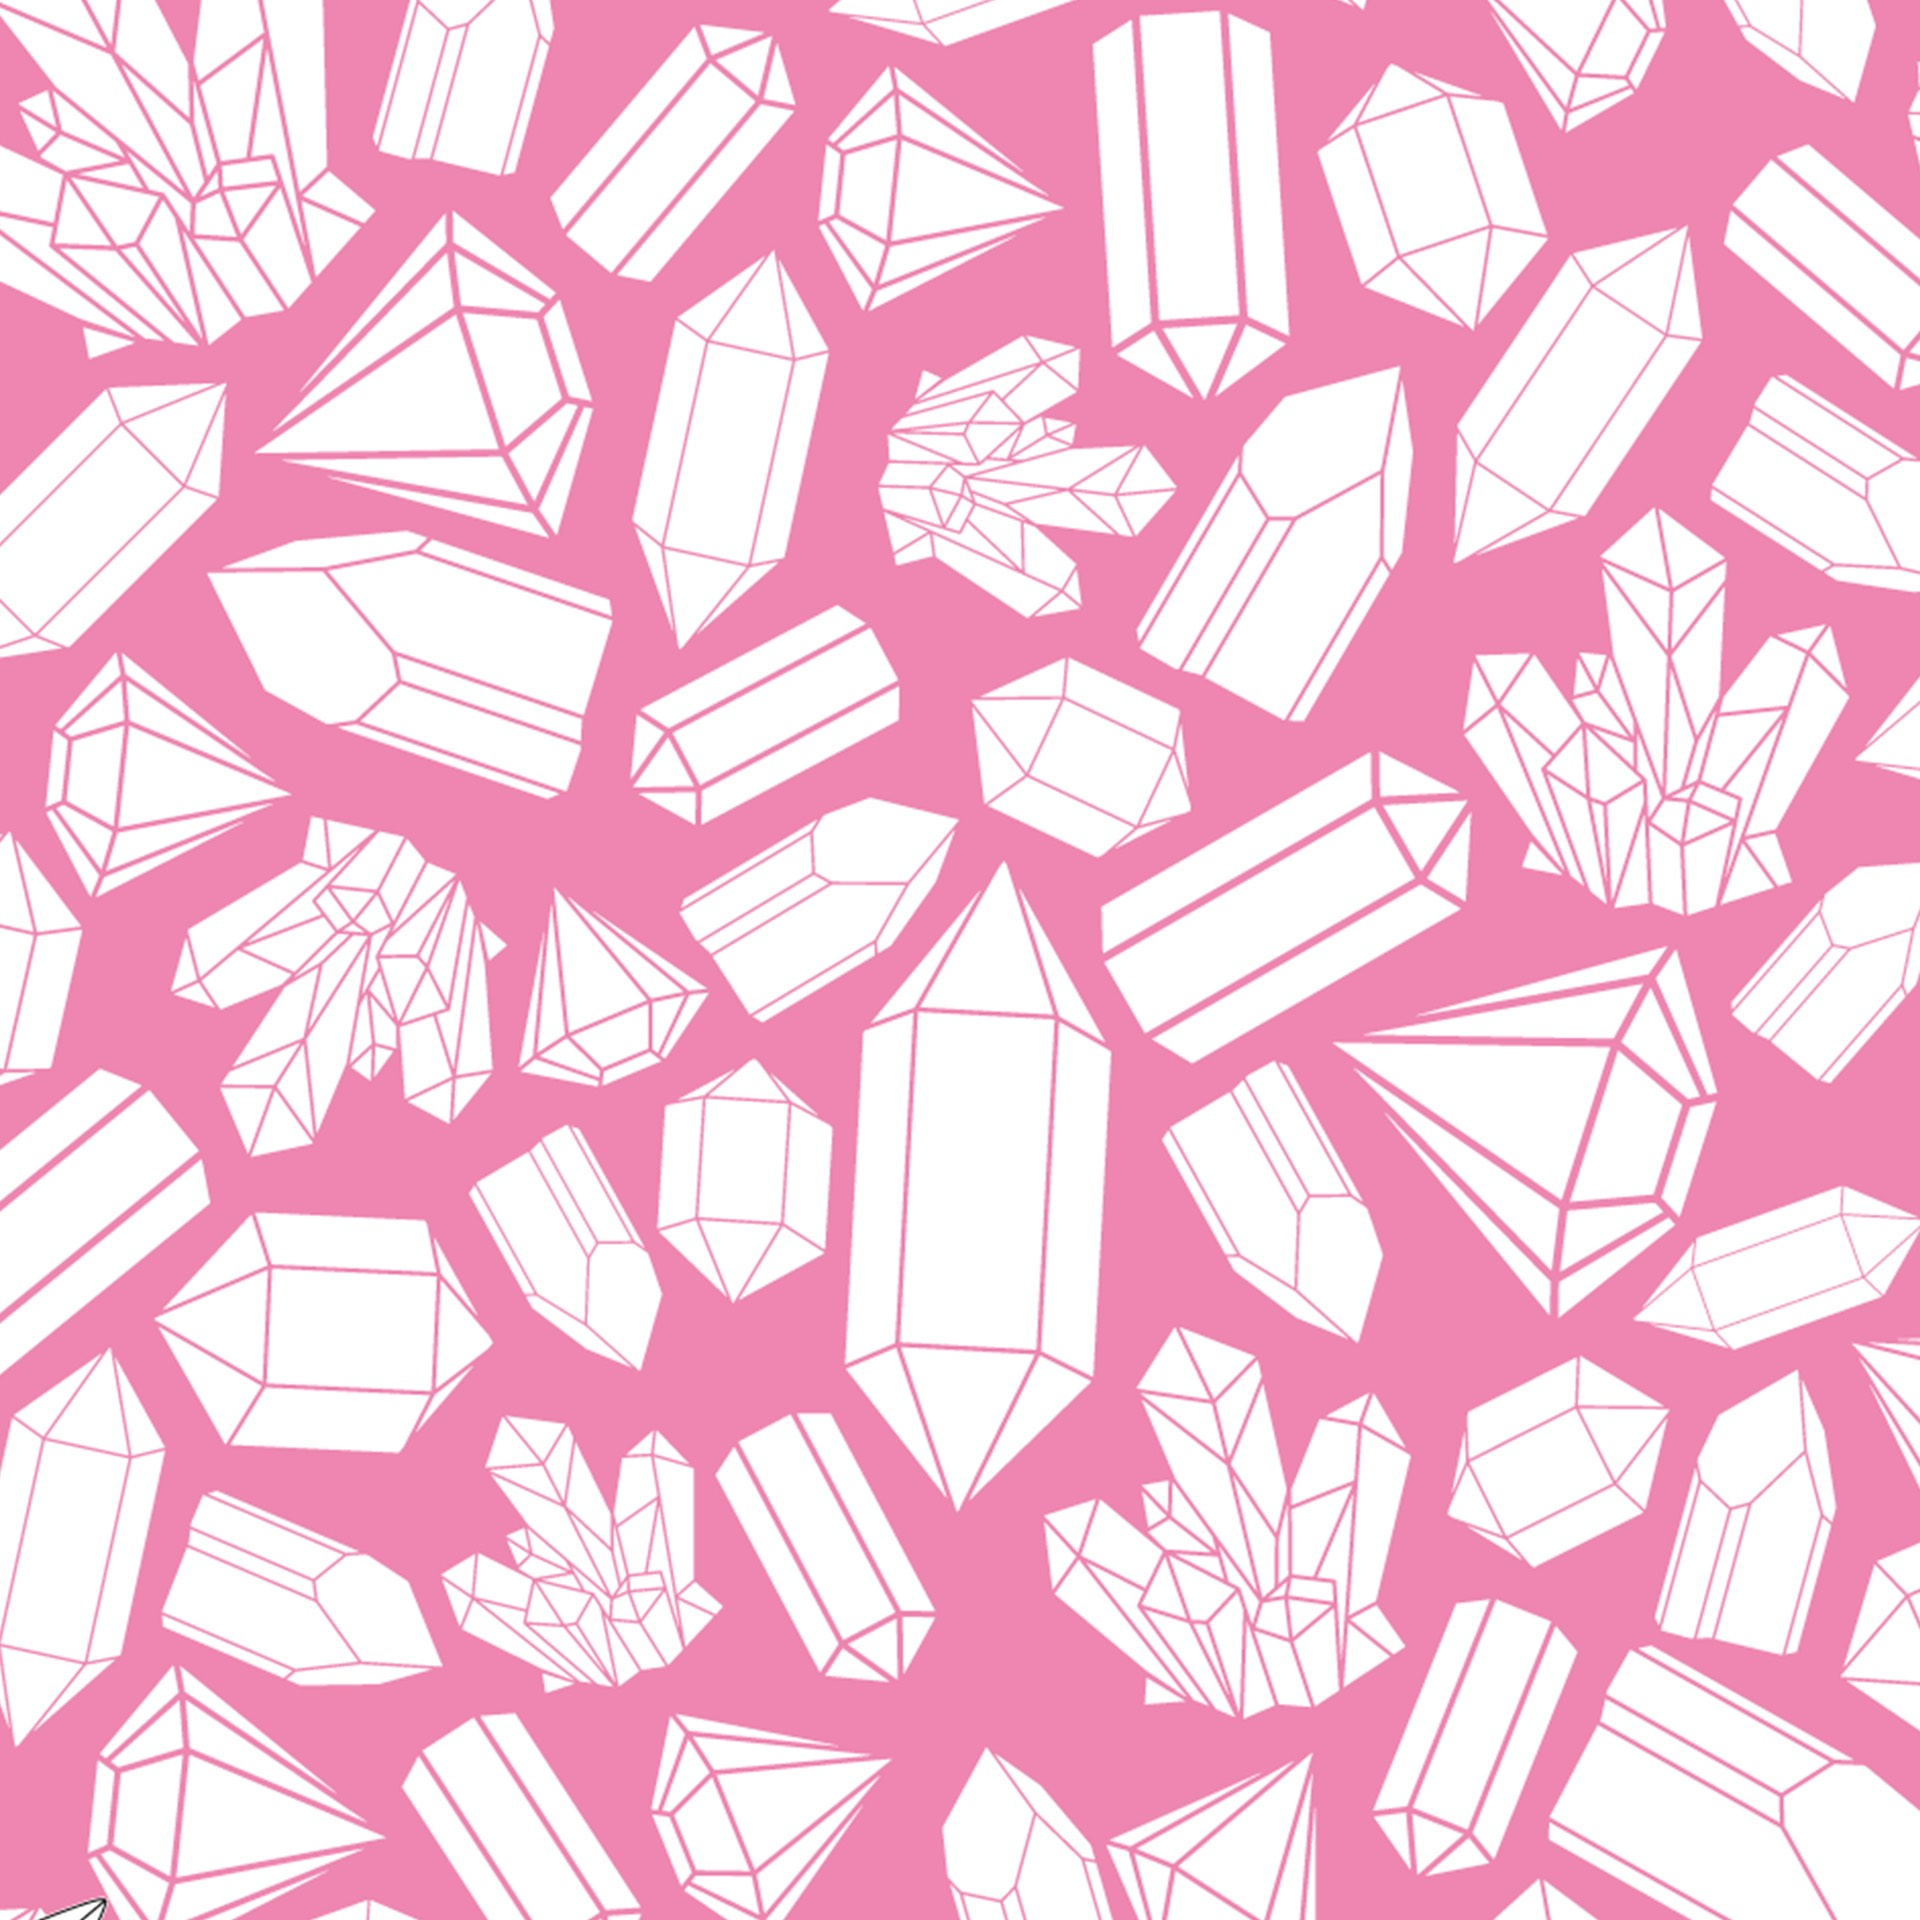 photograph relating to Printable Origami Papers known as Crystal Behavior Printable Origami Paper